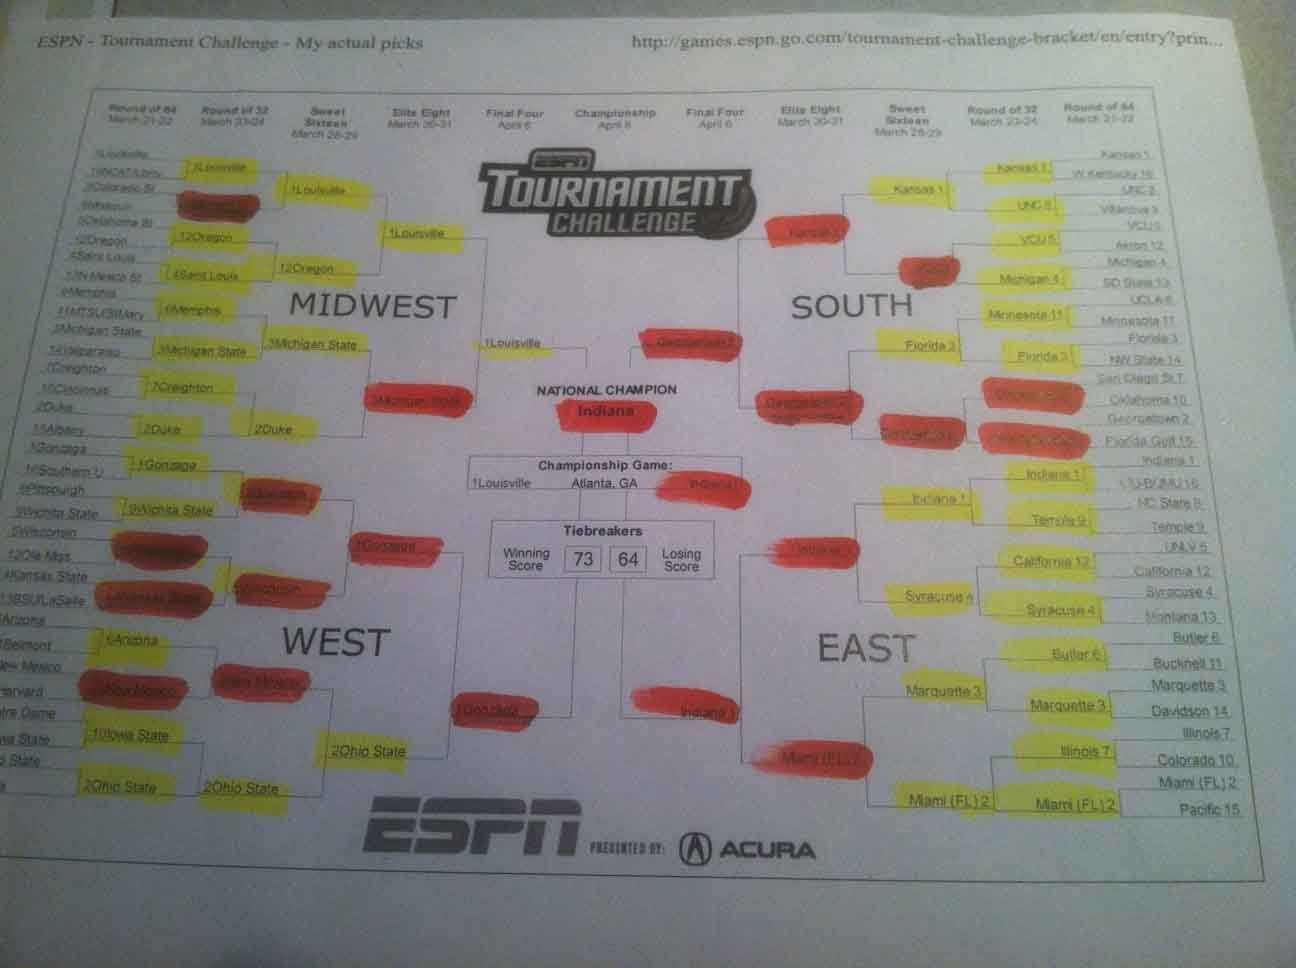 See all the red marks in the middle of this bracket? That's bad. (Source: RNN)